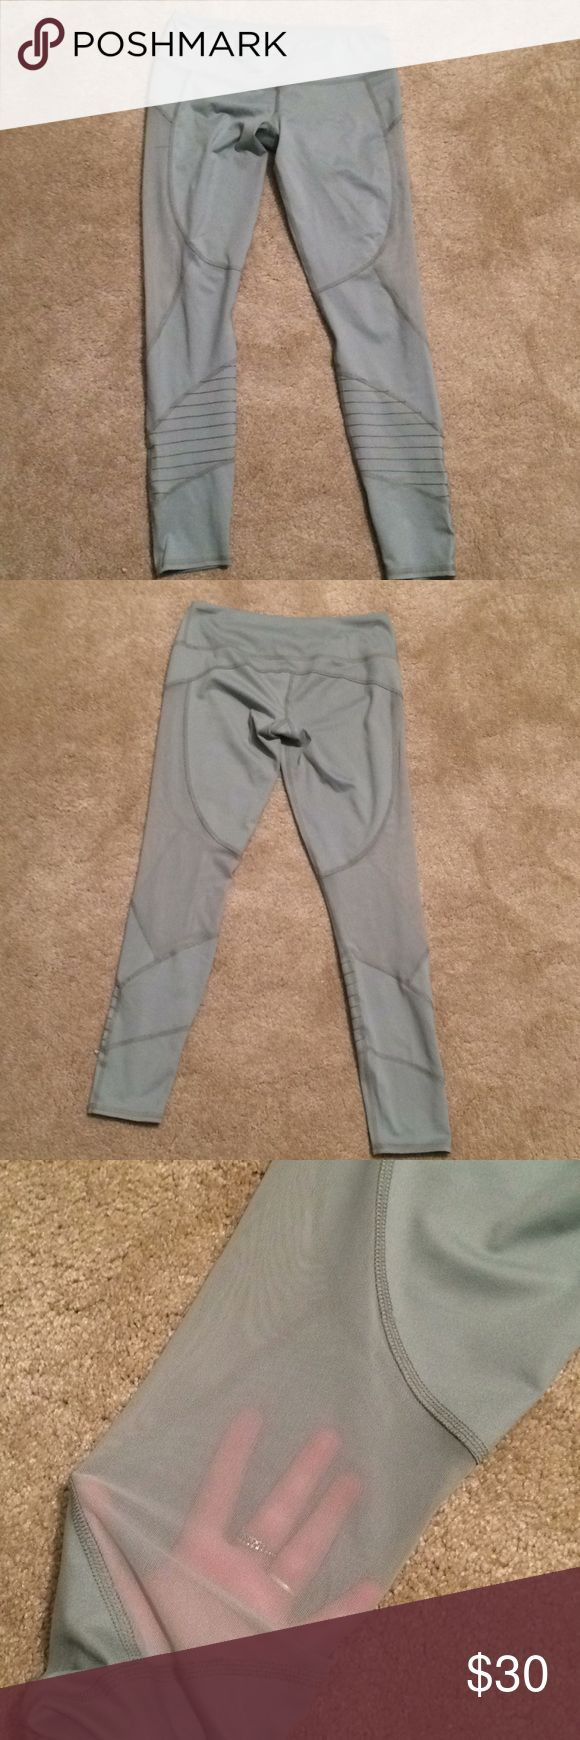 NWOT abercrombie & fitch mesh leggings these  abercrombie & fitch leggings have never been worn! my friend has the same pair and loves them, i just got too small of a size): these leggings have mesh and cool stitching which make them very unique and are a super fun shade of light green! ask me any questions and price is negotiable. i can model these upon request to see where the mesh falls etc. they just don't fit that well which is why i didn't post modeling Abercrombie & Fitch Pants…